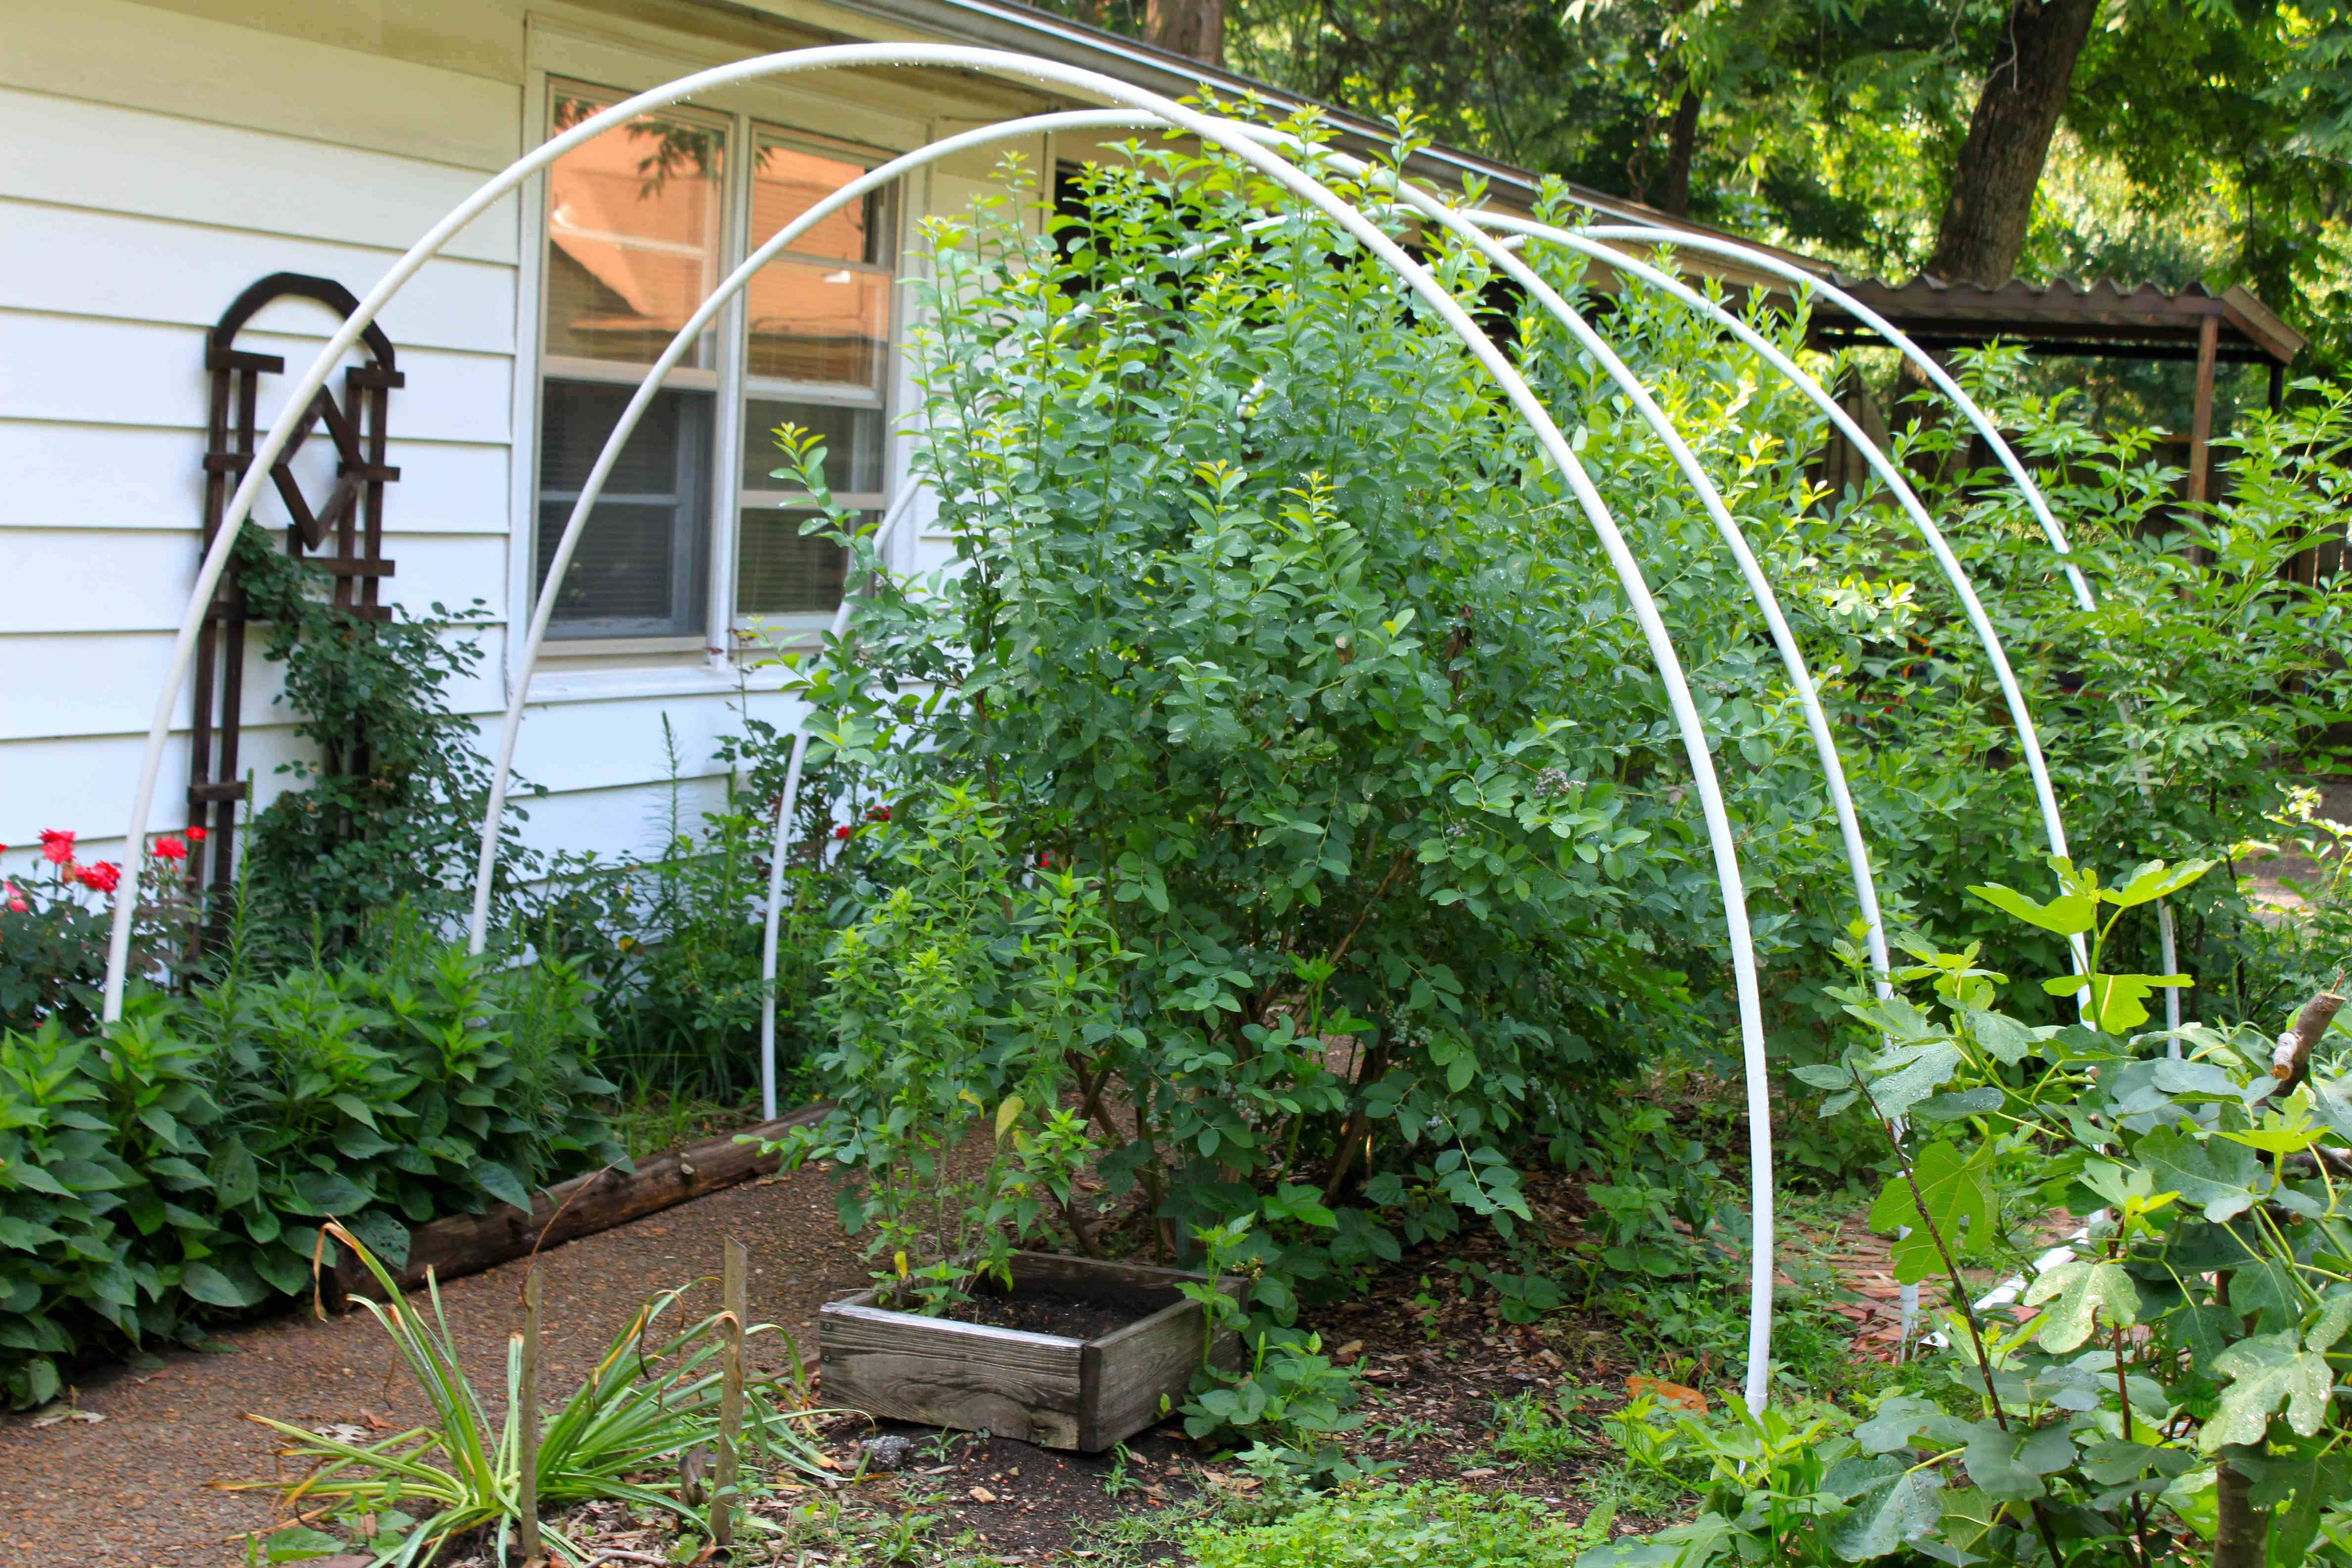 Many Years Ago I Tried D Deer Netting Over My Blueberry Bushes It Was A Complete Failure Didn T Secure The At Ground Level So Birds